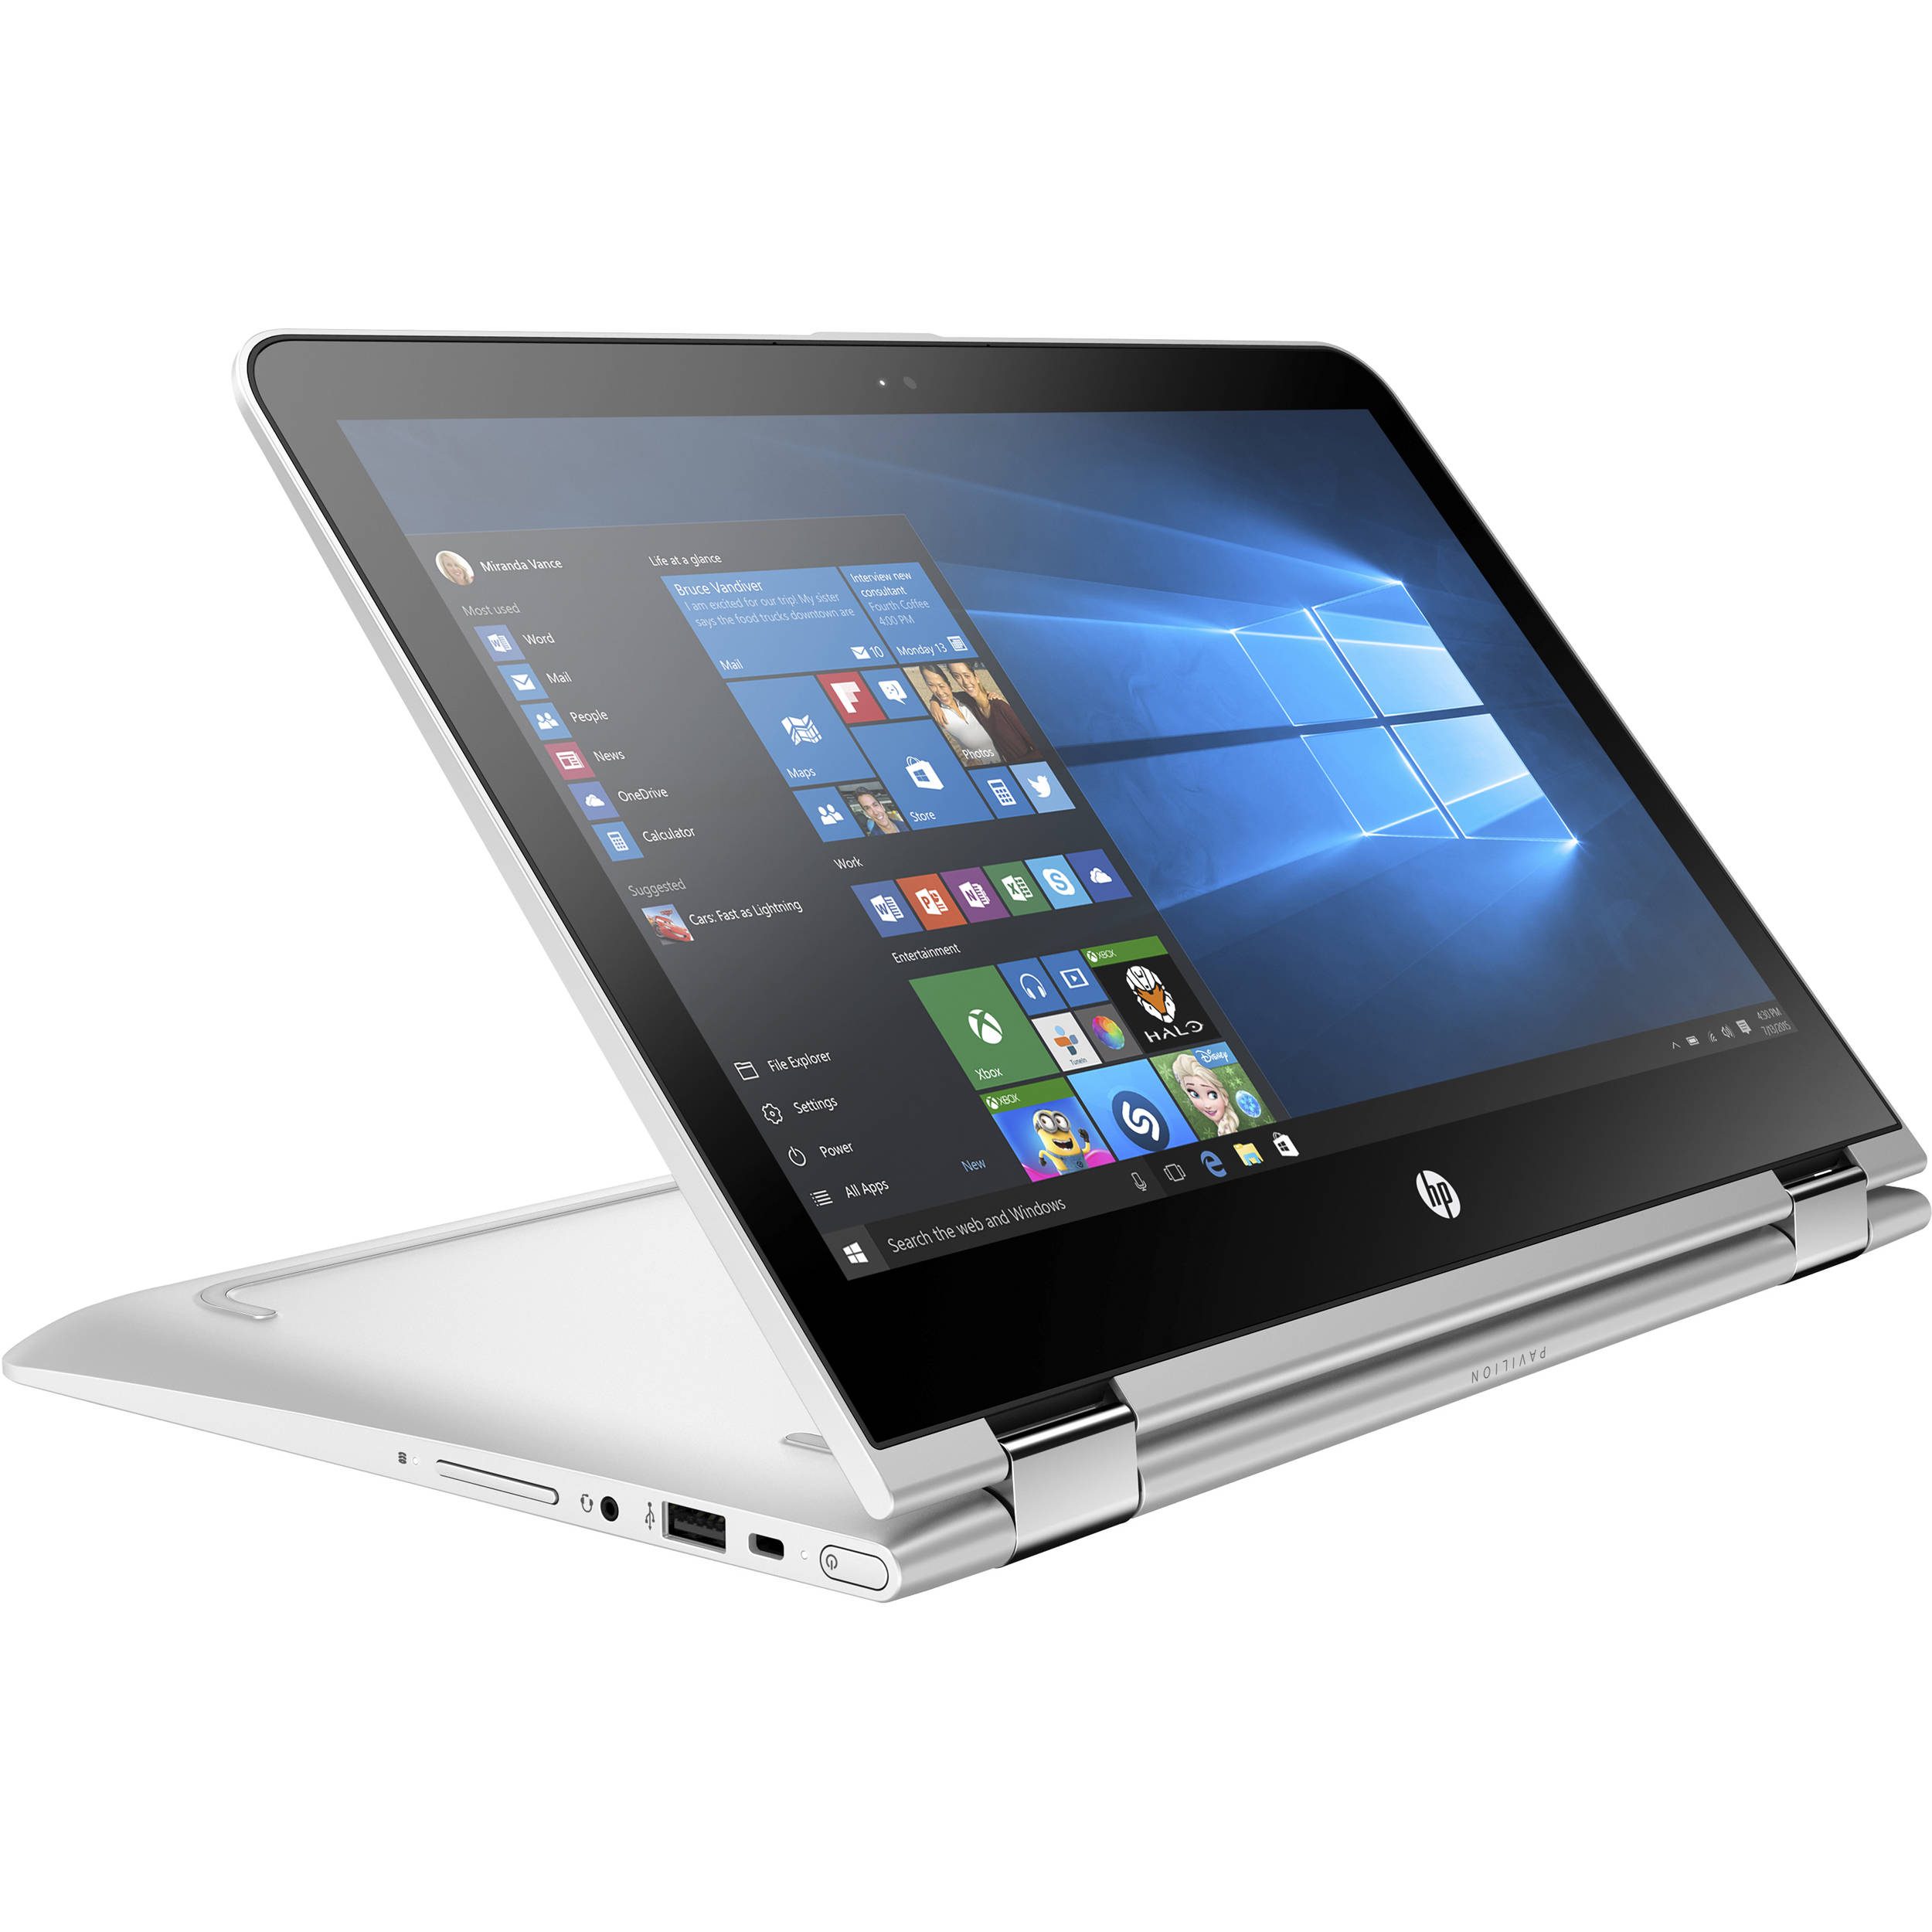 hp pavilion x360 13 u062sa 13.3 2 in 1 review